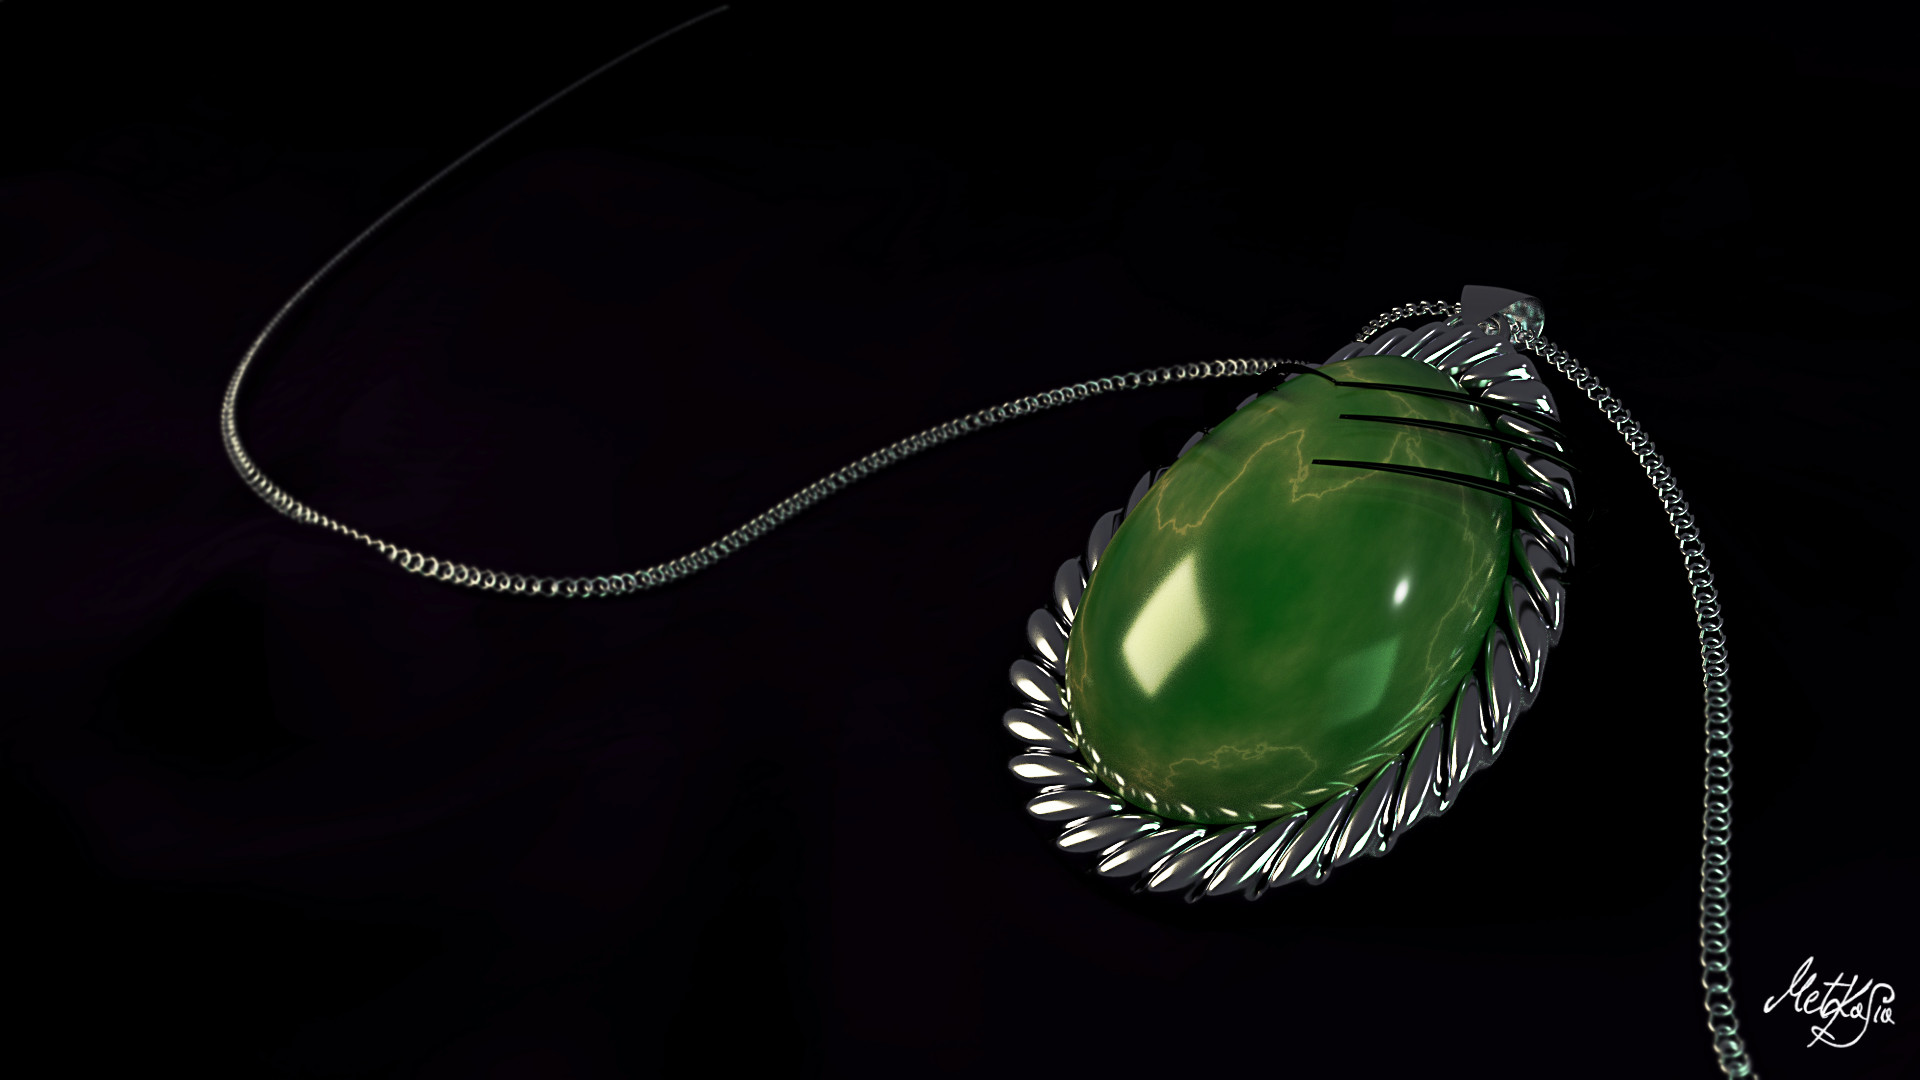 Kasia michalak green stone necklace silver